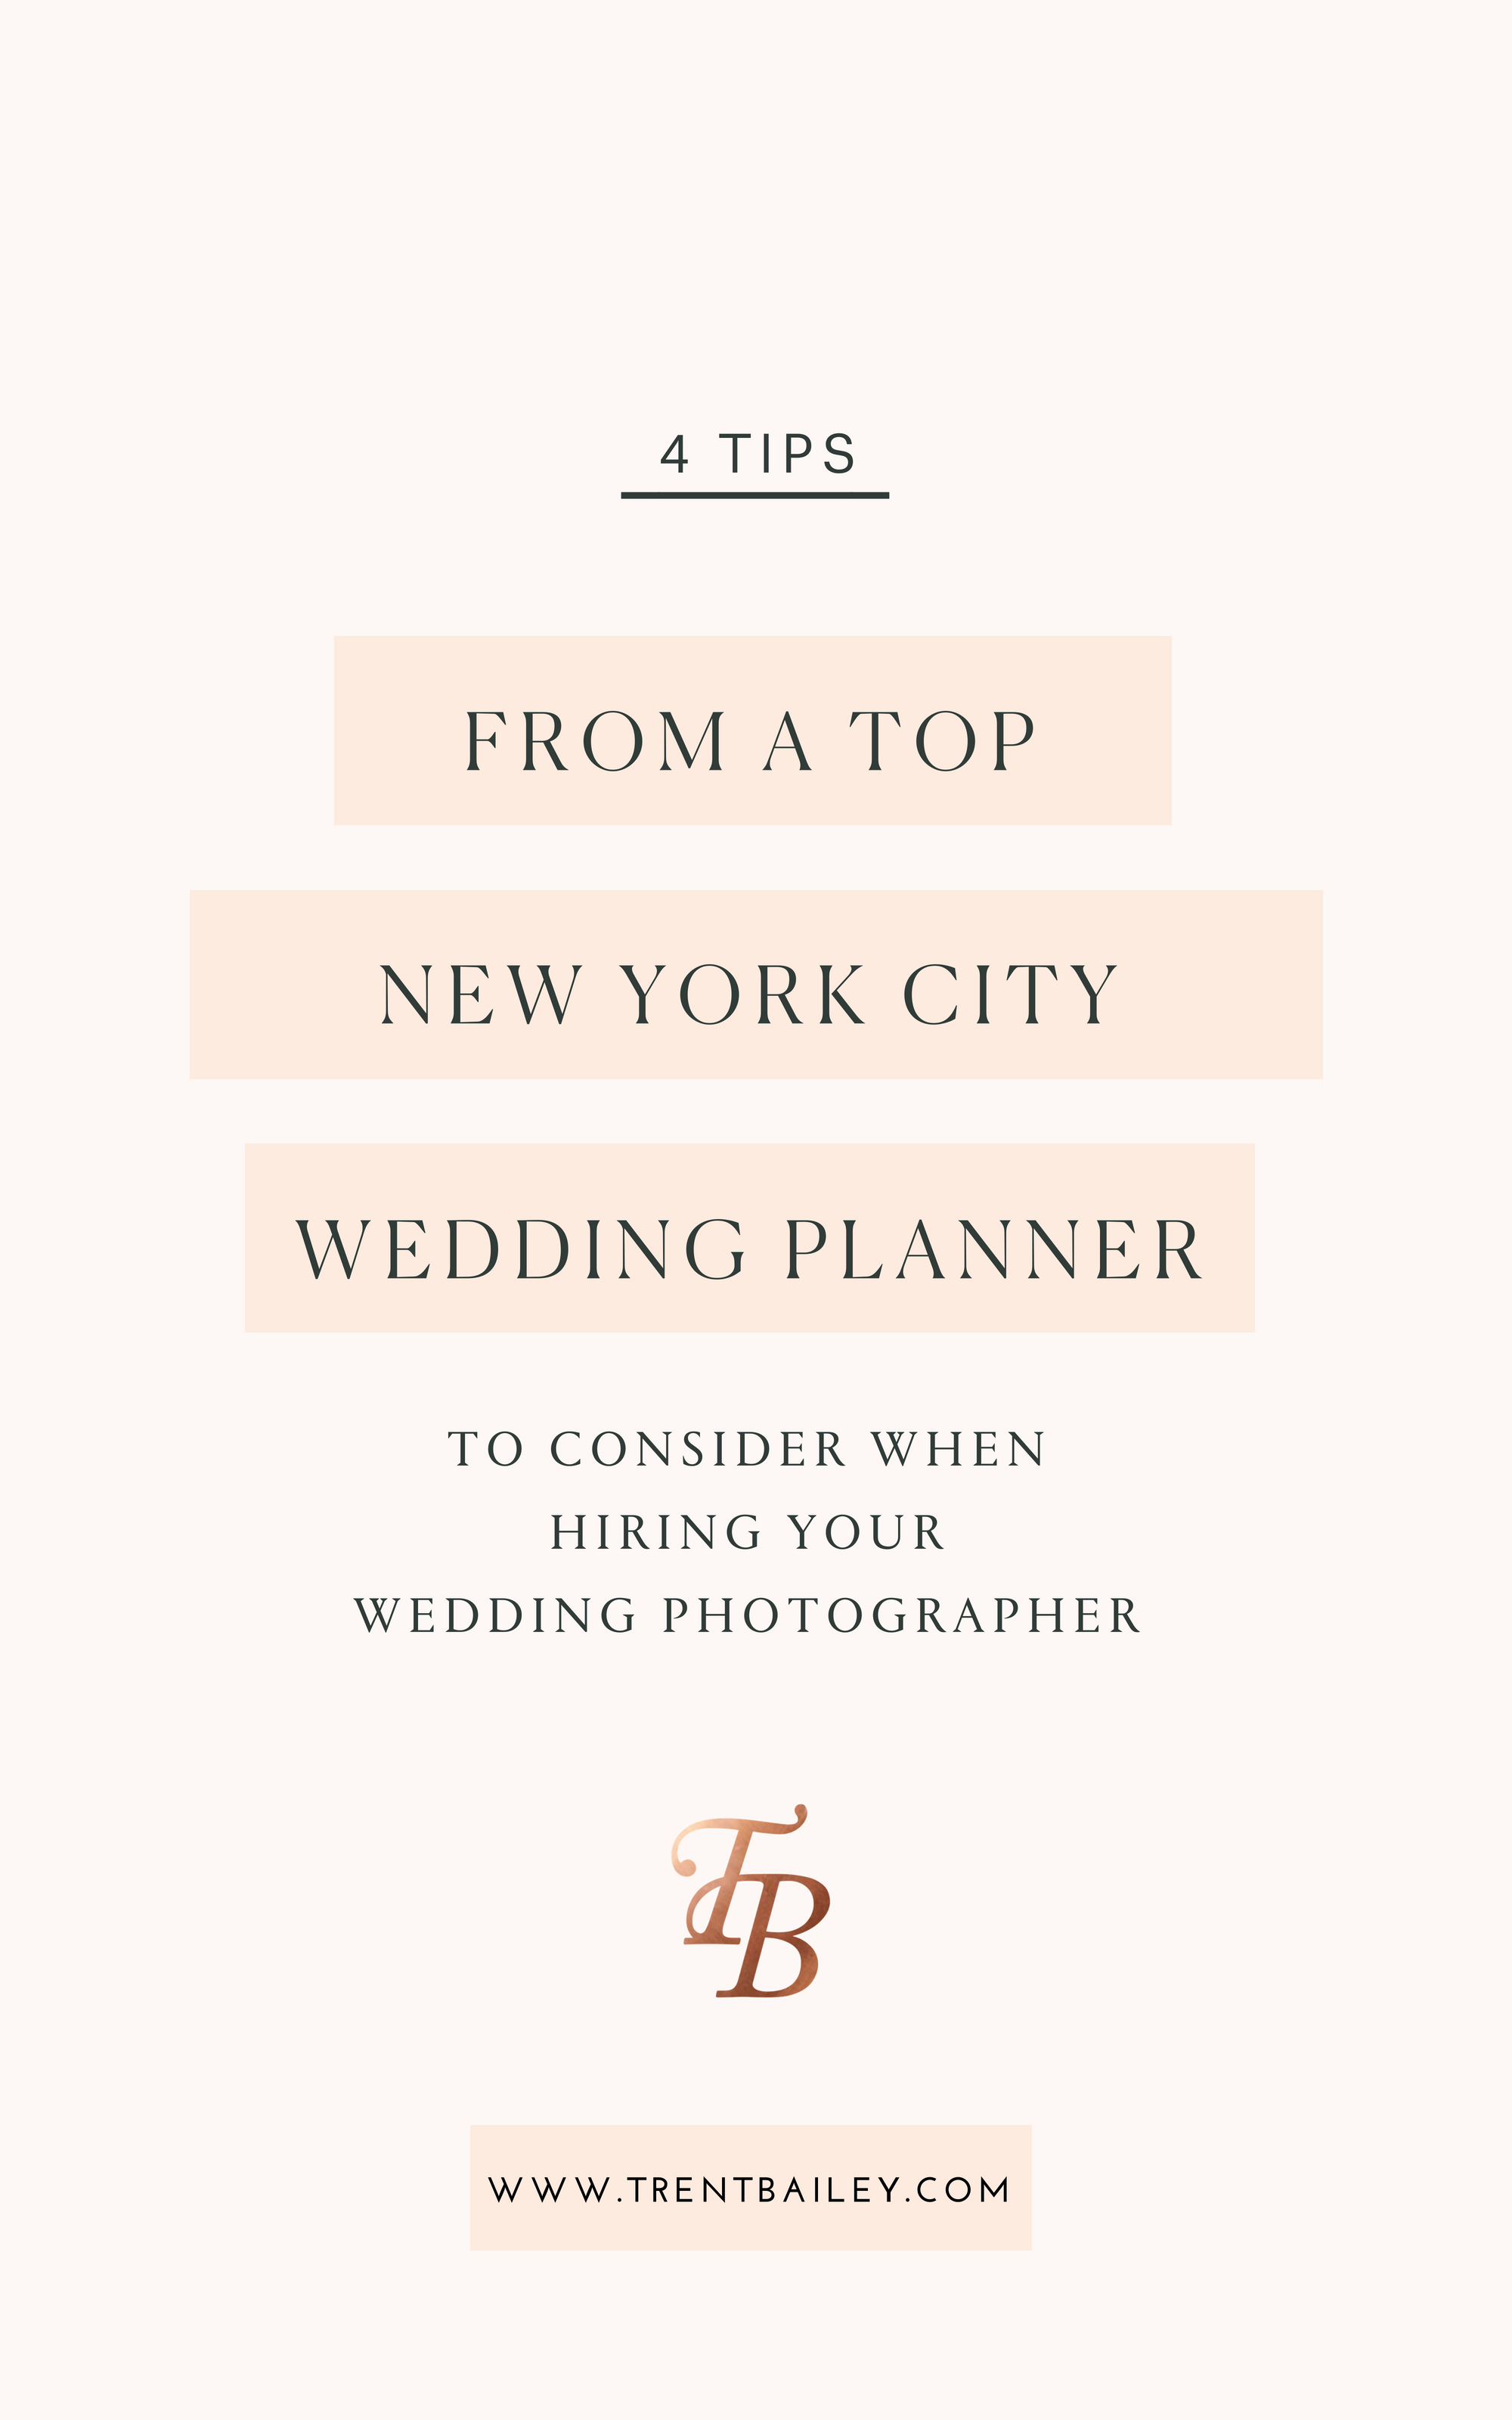 16 - 4 TIPS FOR FINDING THE PERFECT PHOTOGRAPHER FROM AN EVENT PLANNER